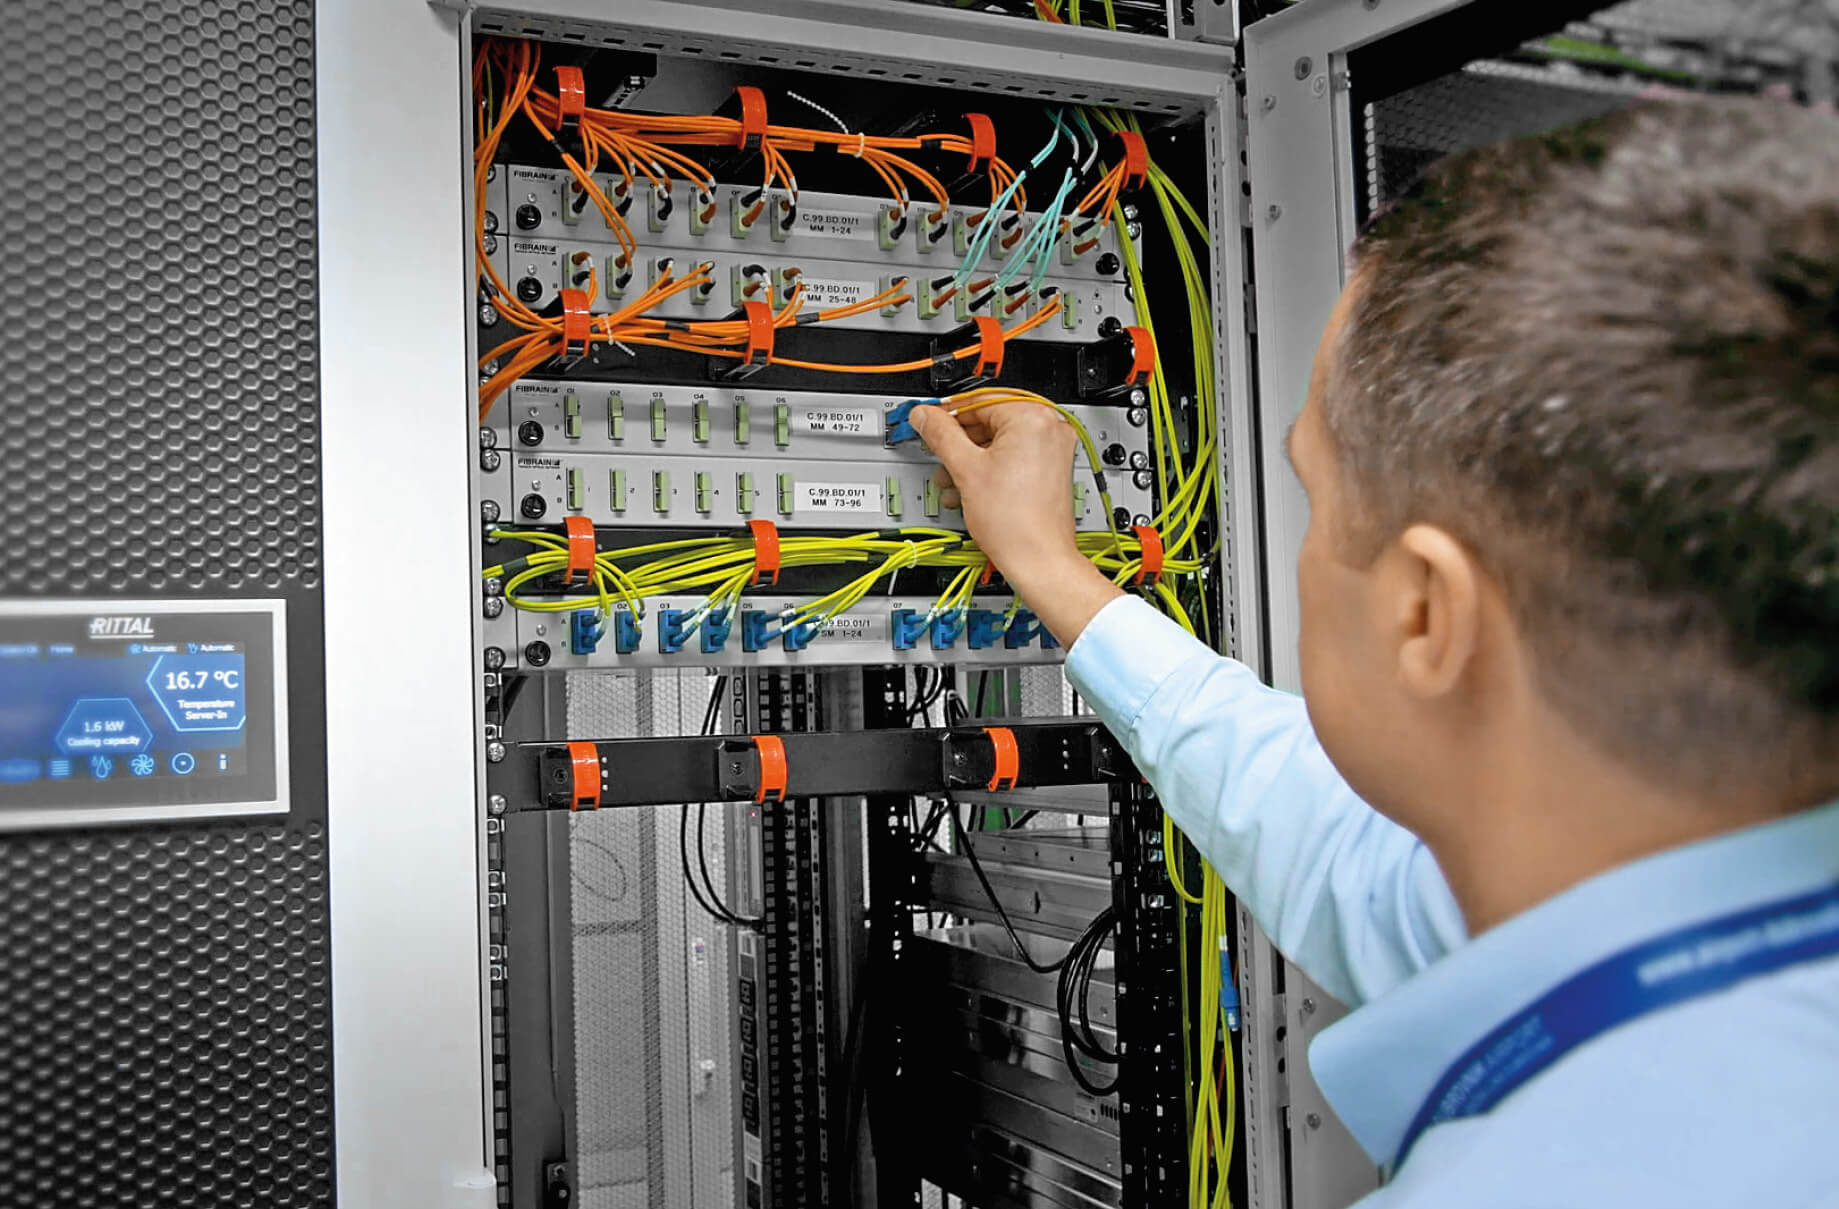 Live wired: Even during a temporary power loss, the system ensures an ongoing IT activity.